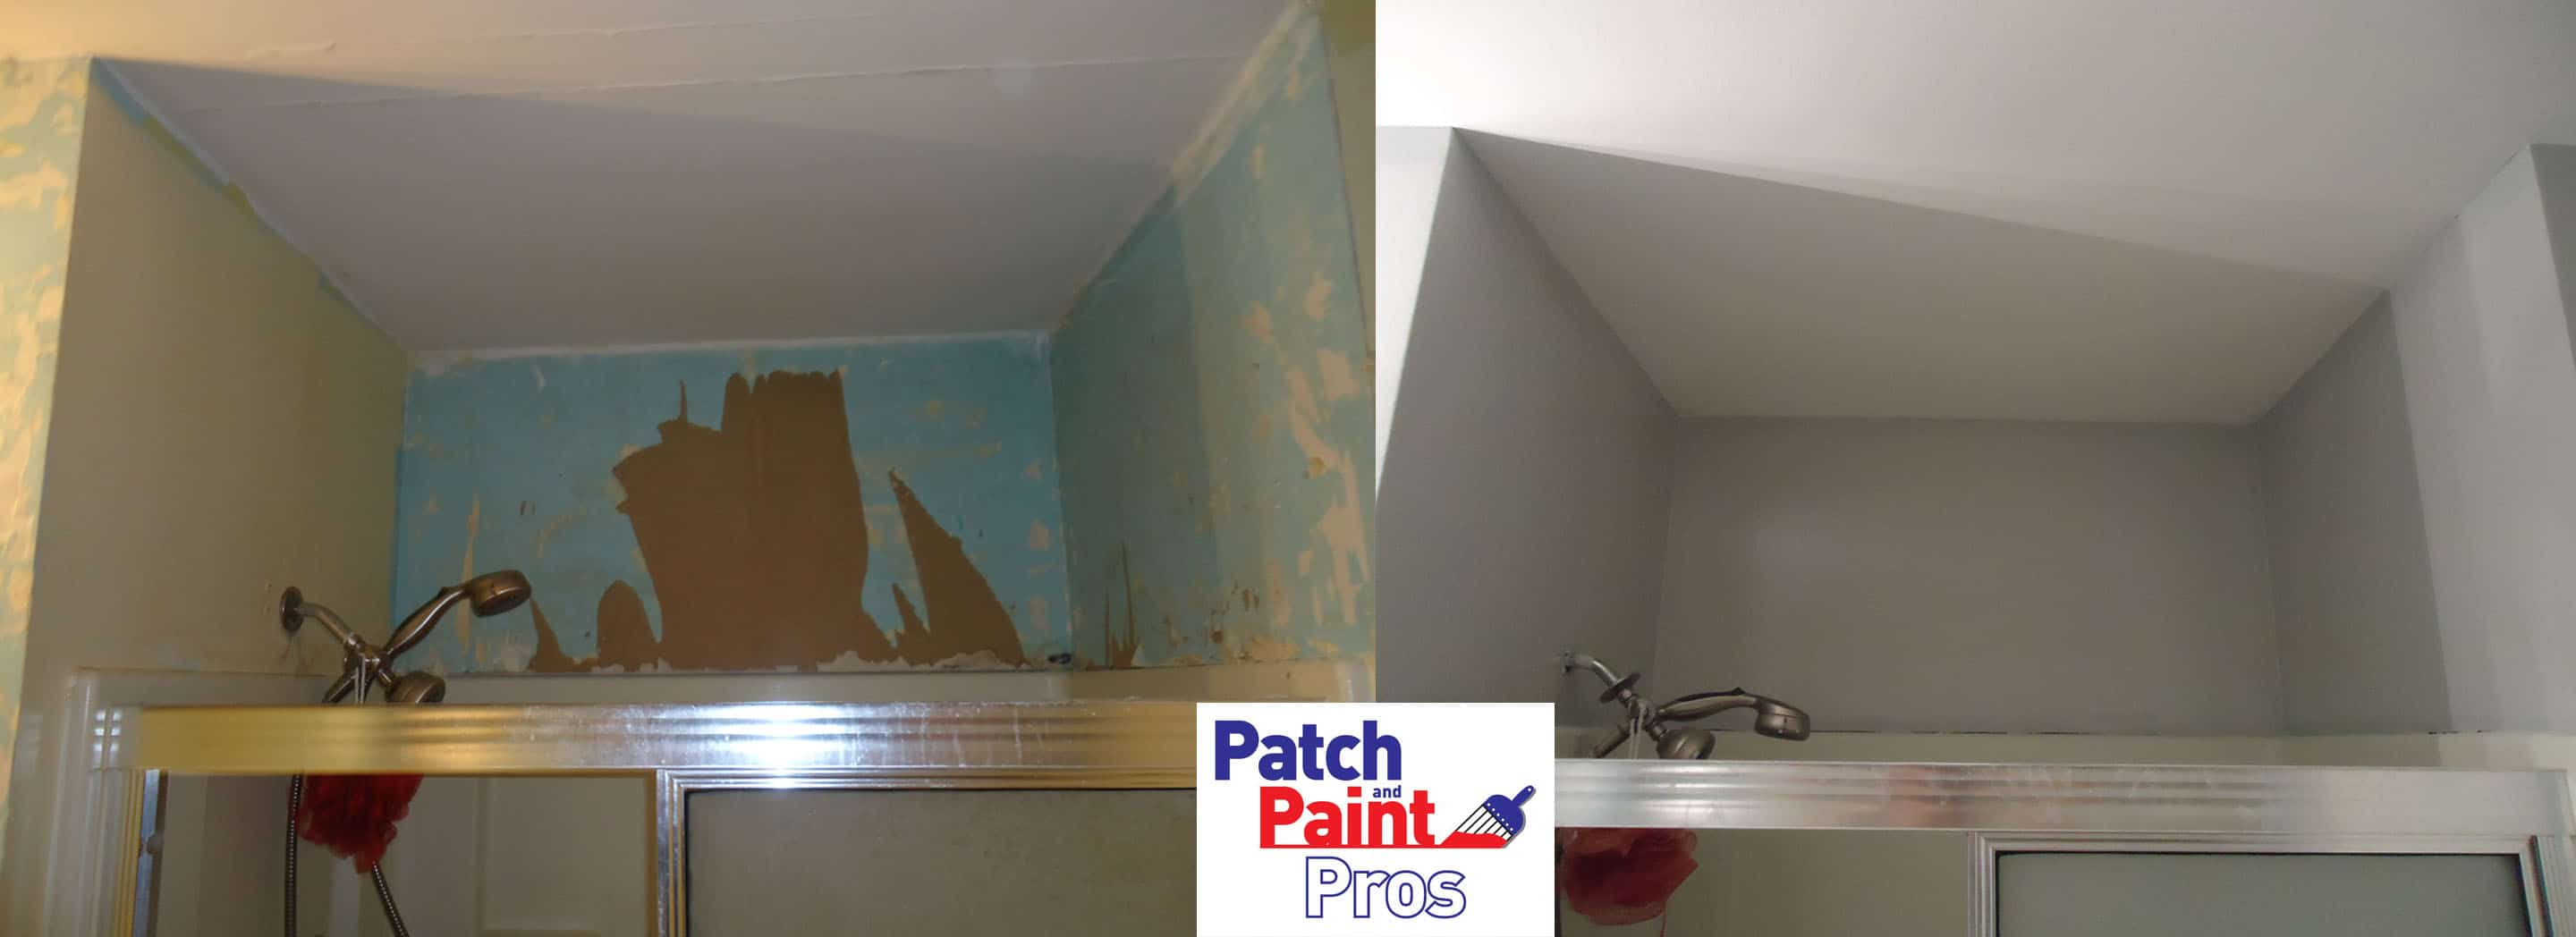 Top rv paint designs images for pinterest tattoos for Rv bathroom wallpaper